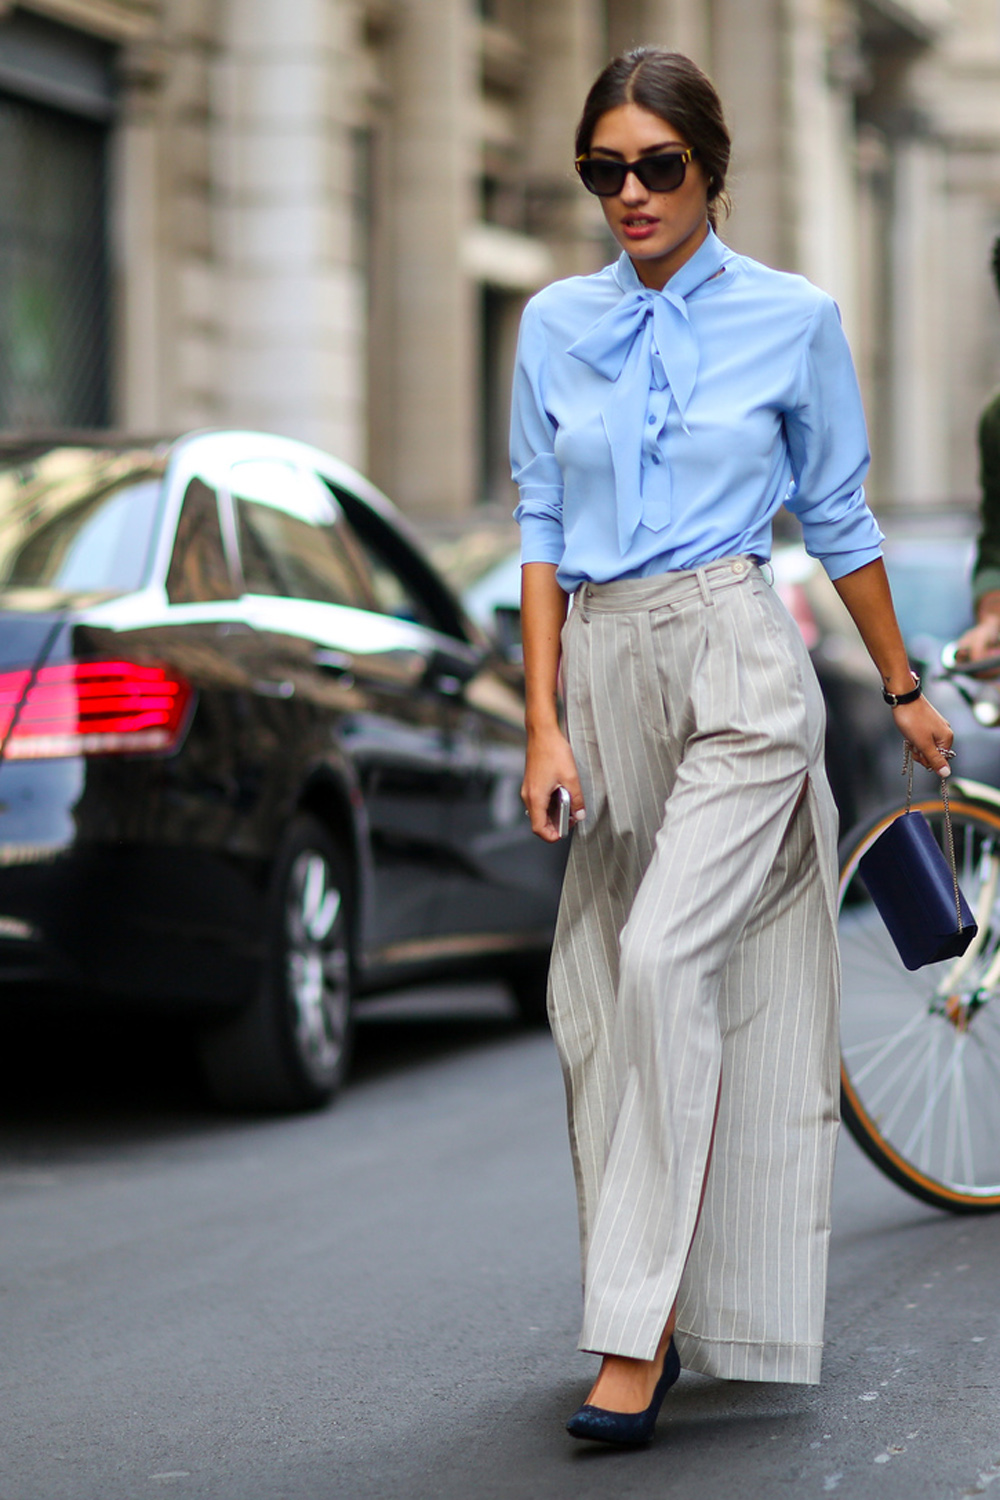 ribbons-bows-street-style-20.jpg